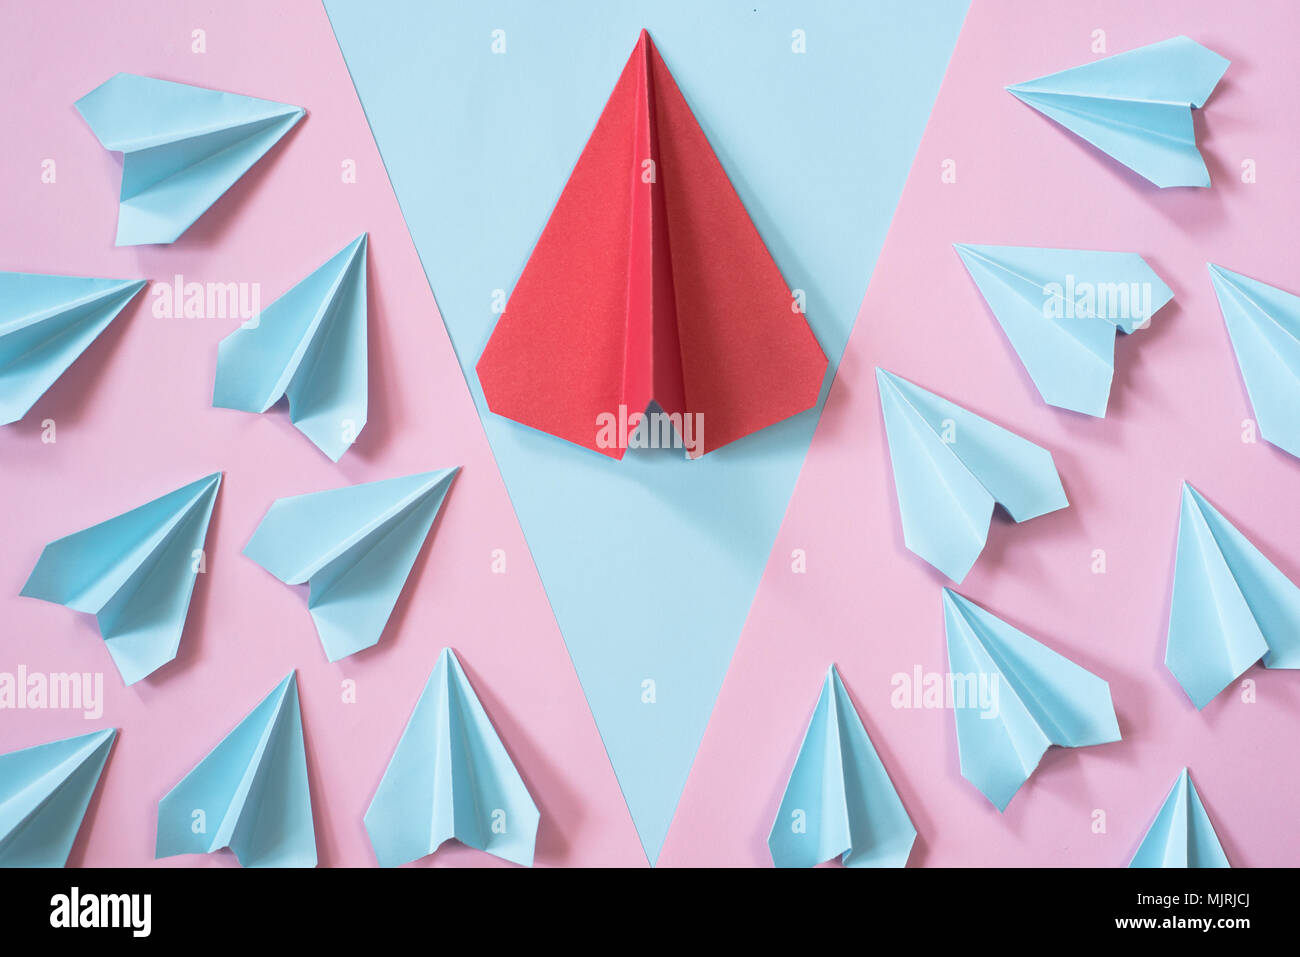 blue paper airplanes surrounding the bigger red paper airplane on pastel pink and blue color background. leadership concept - Stock Image